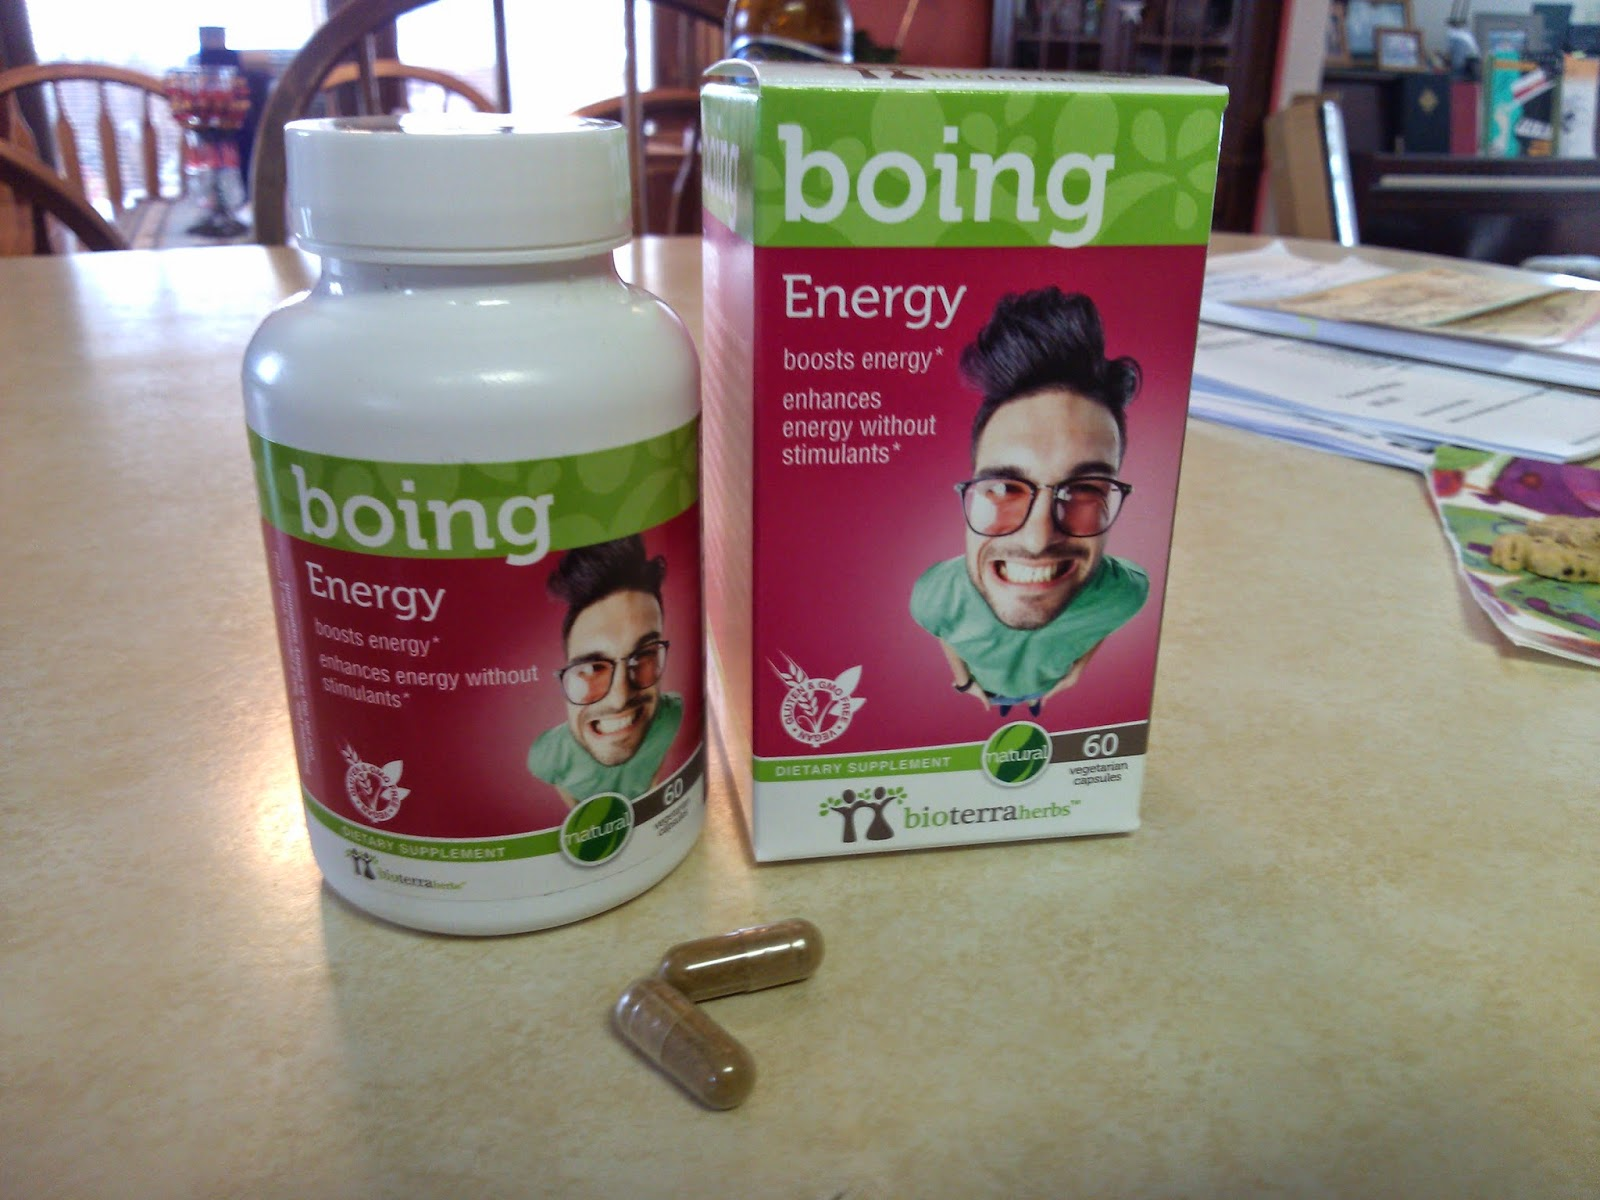 BioTerra Boing Energy Herbal Supplement Review